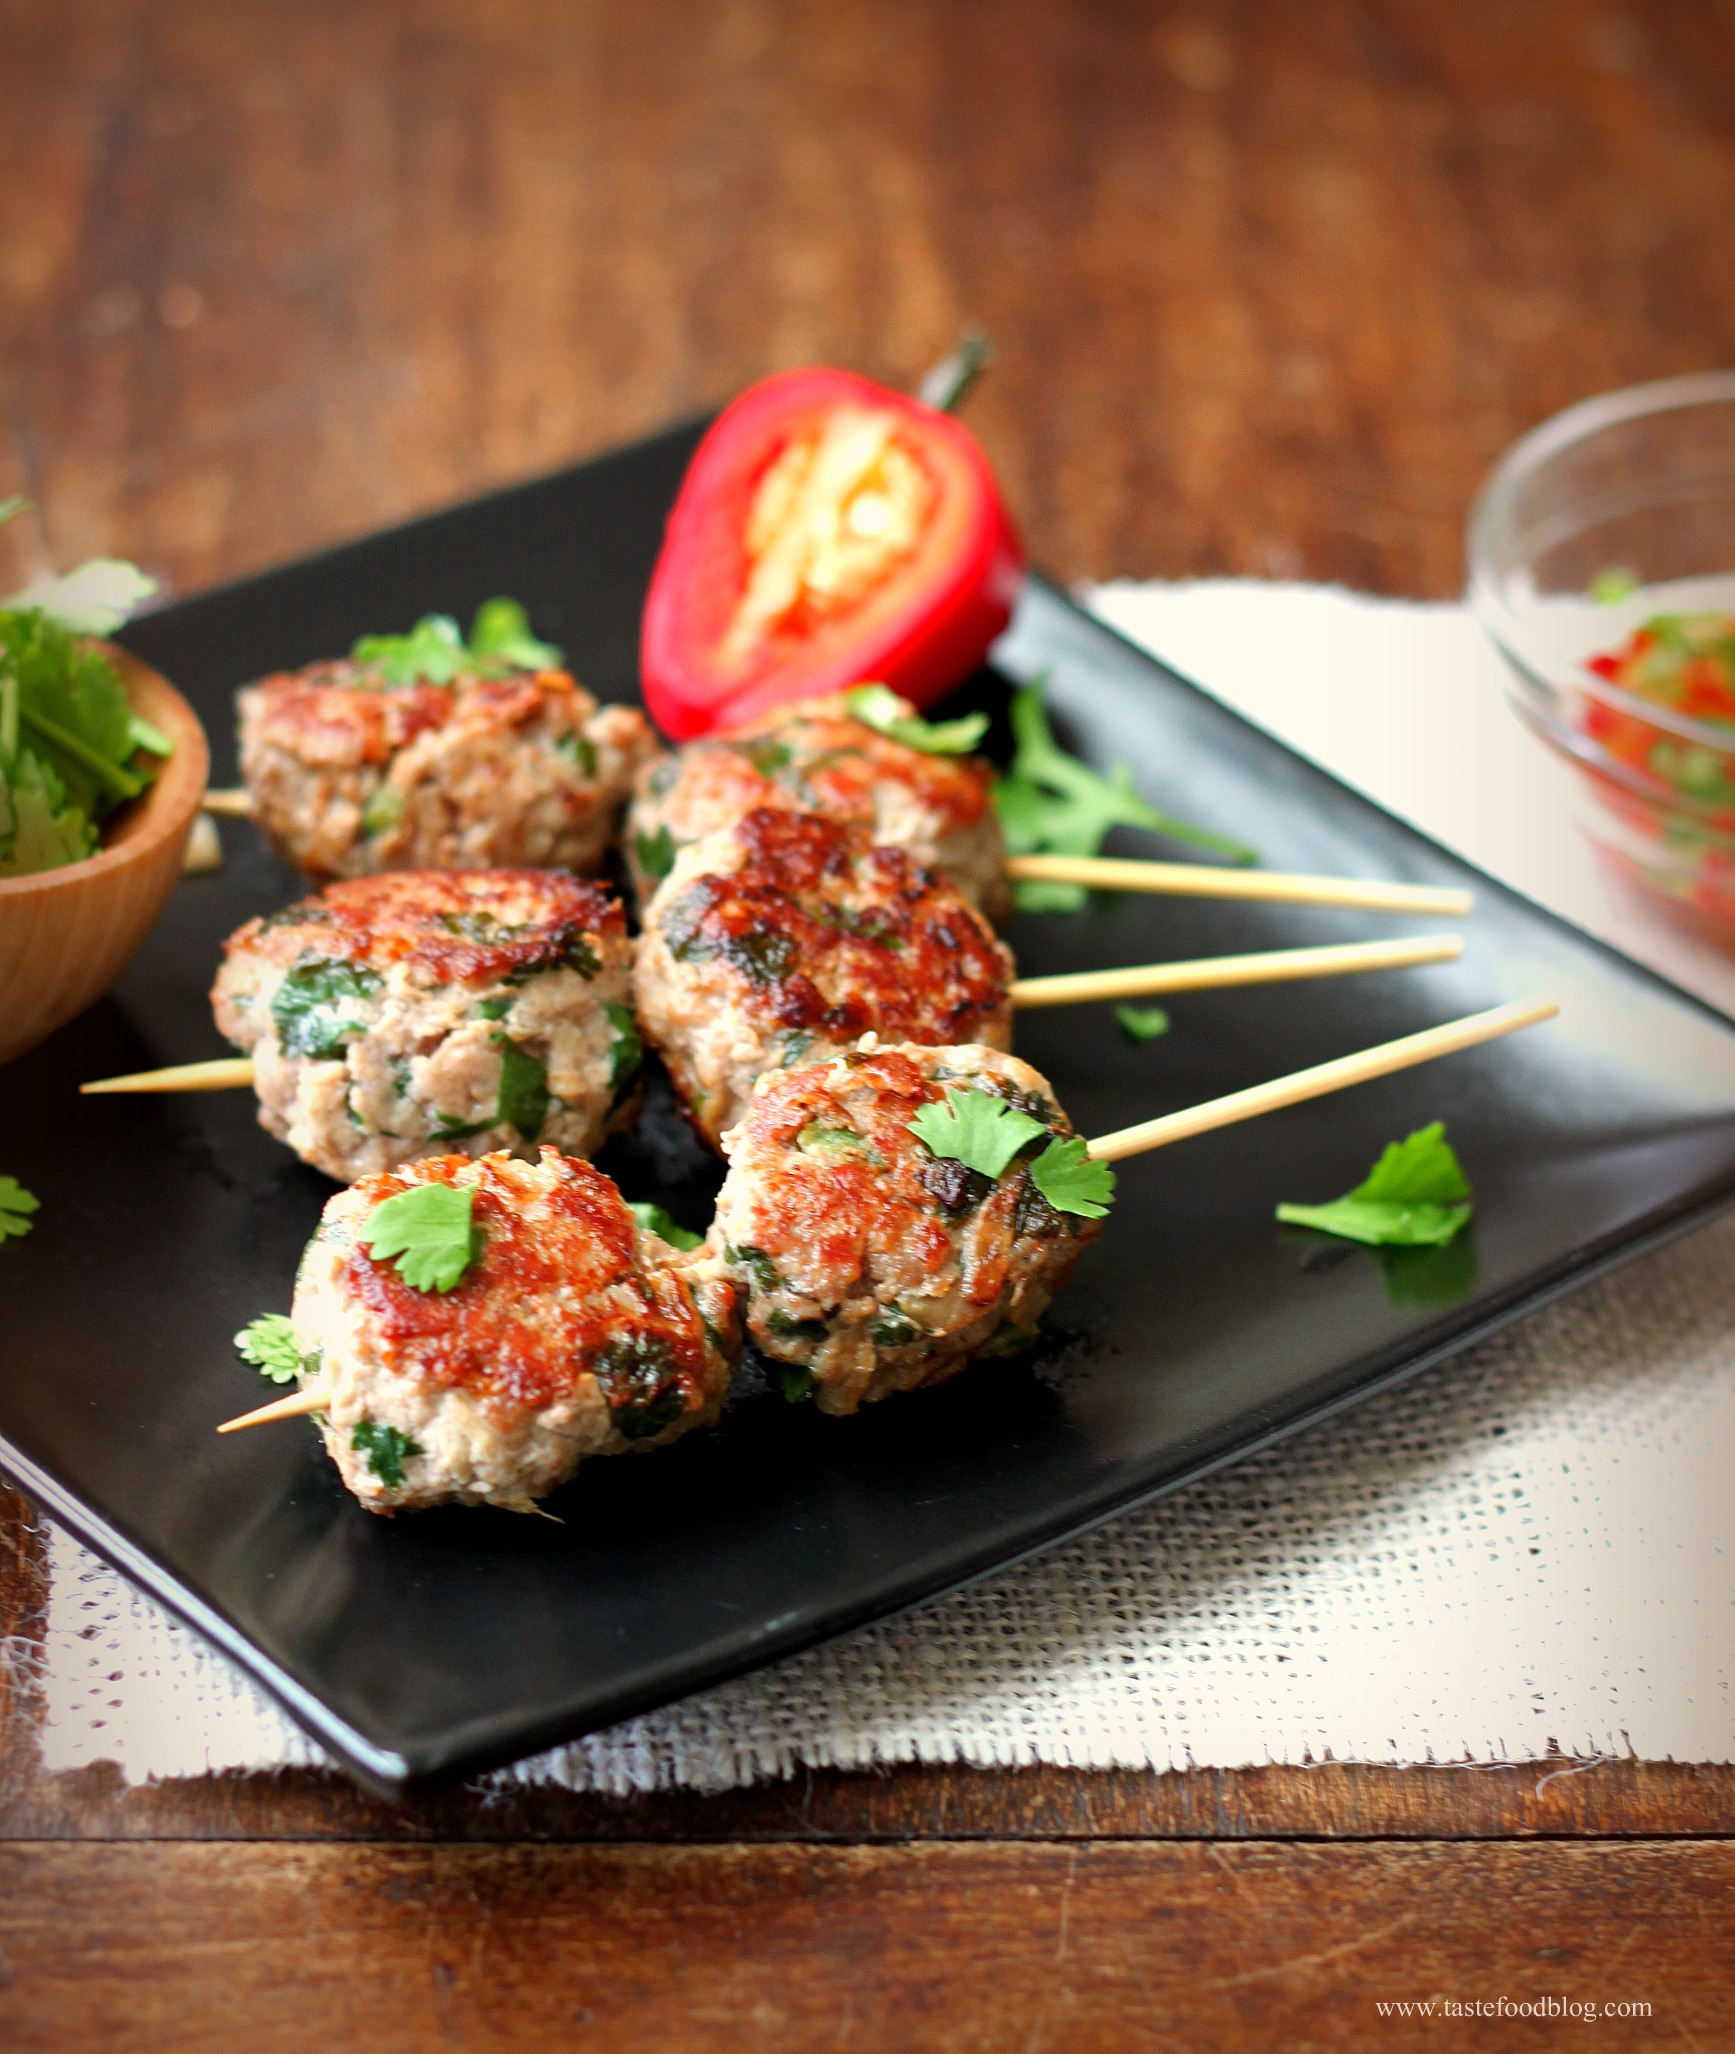 On A Stick! And A Recipe For Chinese Meatballs